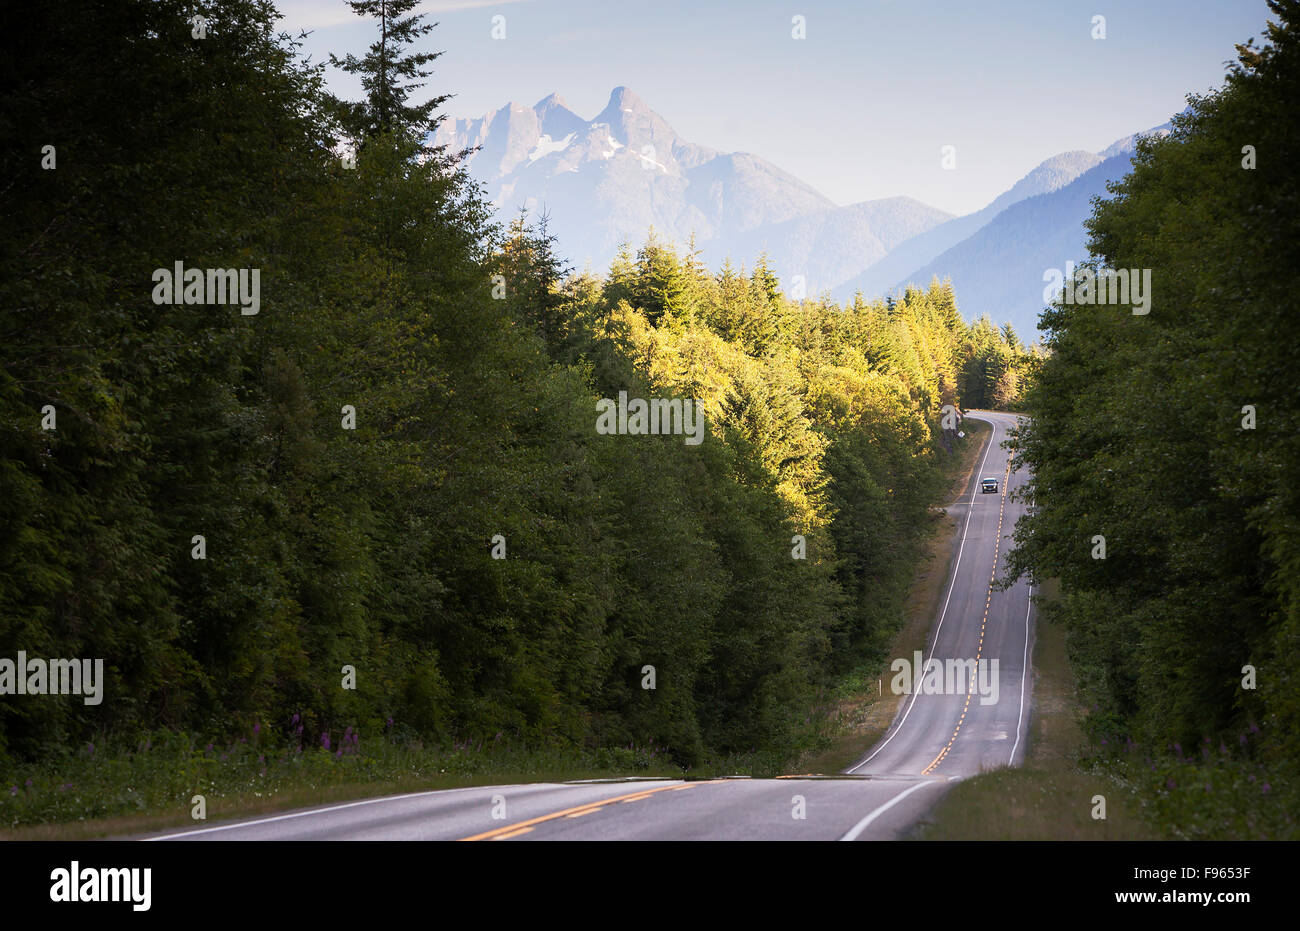 Mountian views along hwy 19 north of Woss, before Nimpkish Lake - Stock Image